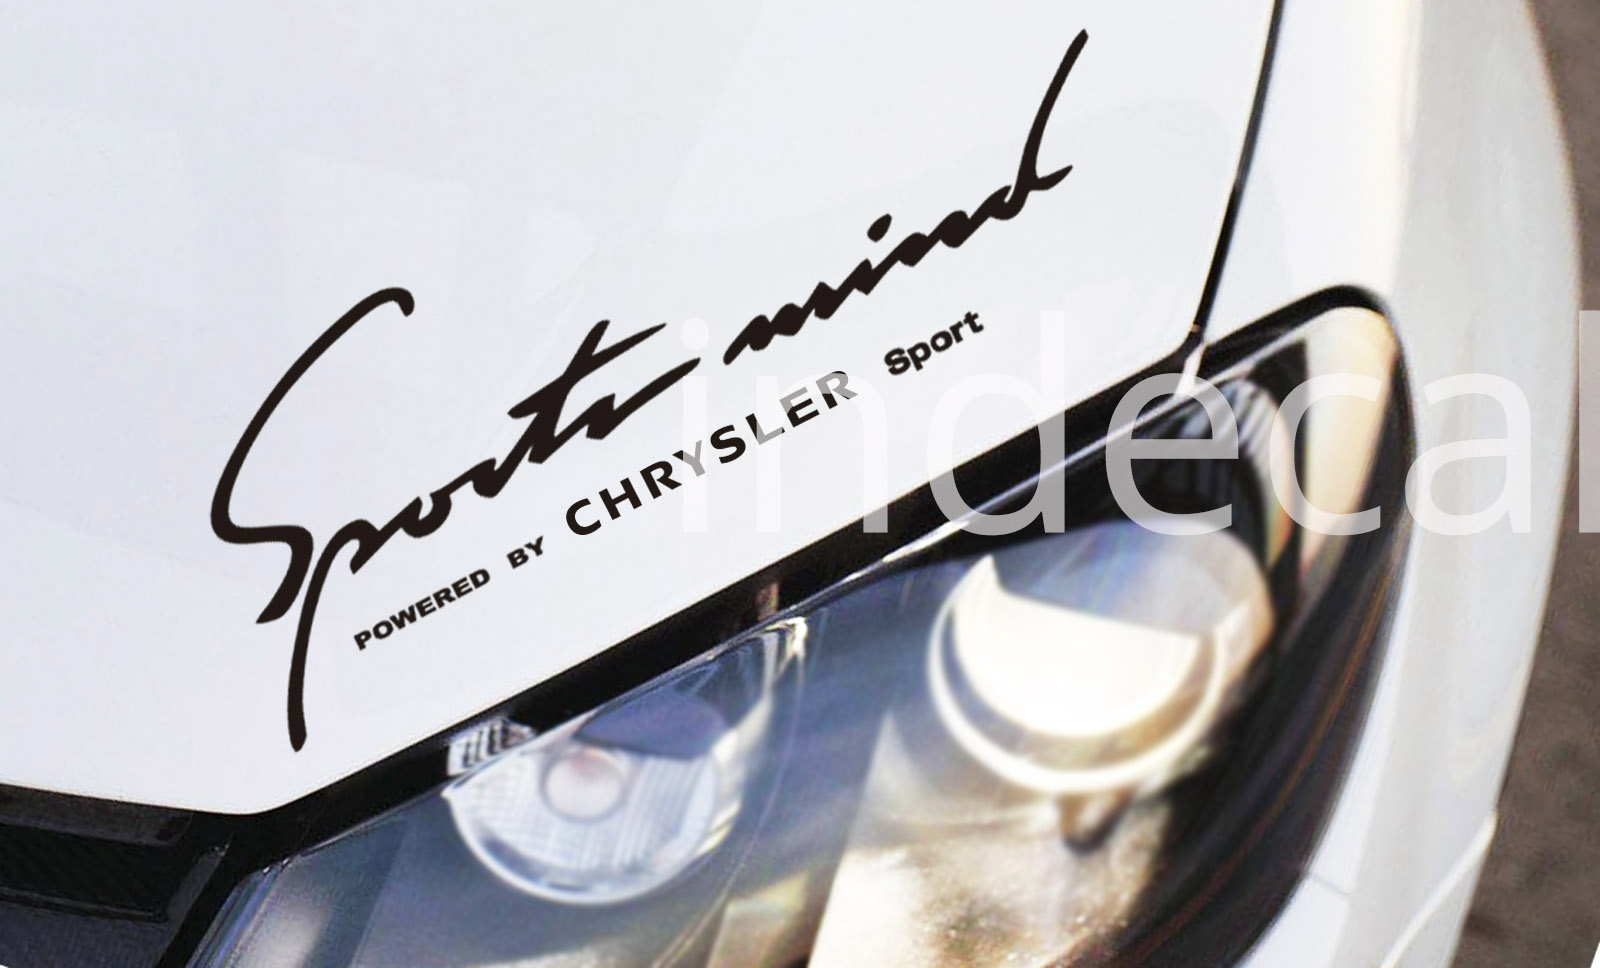 1 x Chrysler Sports Mind Sticker - Black